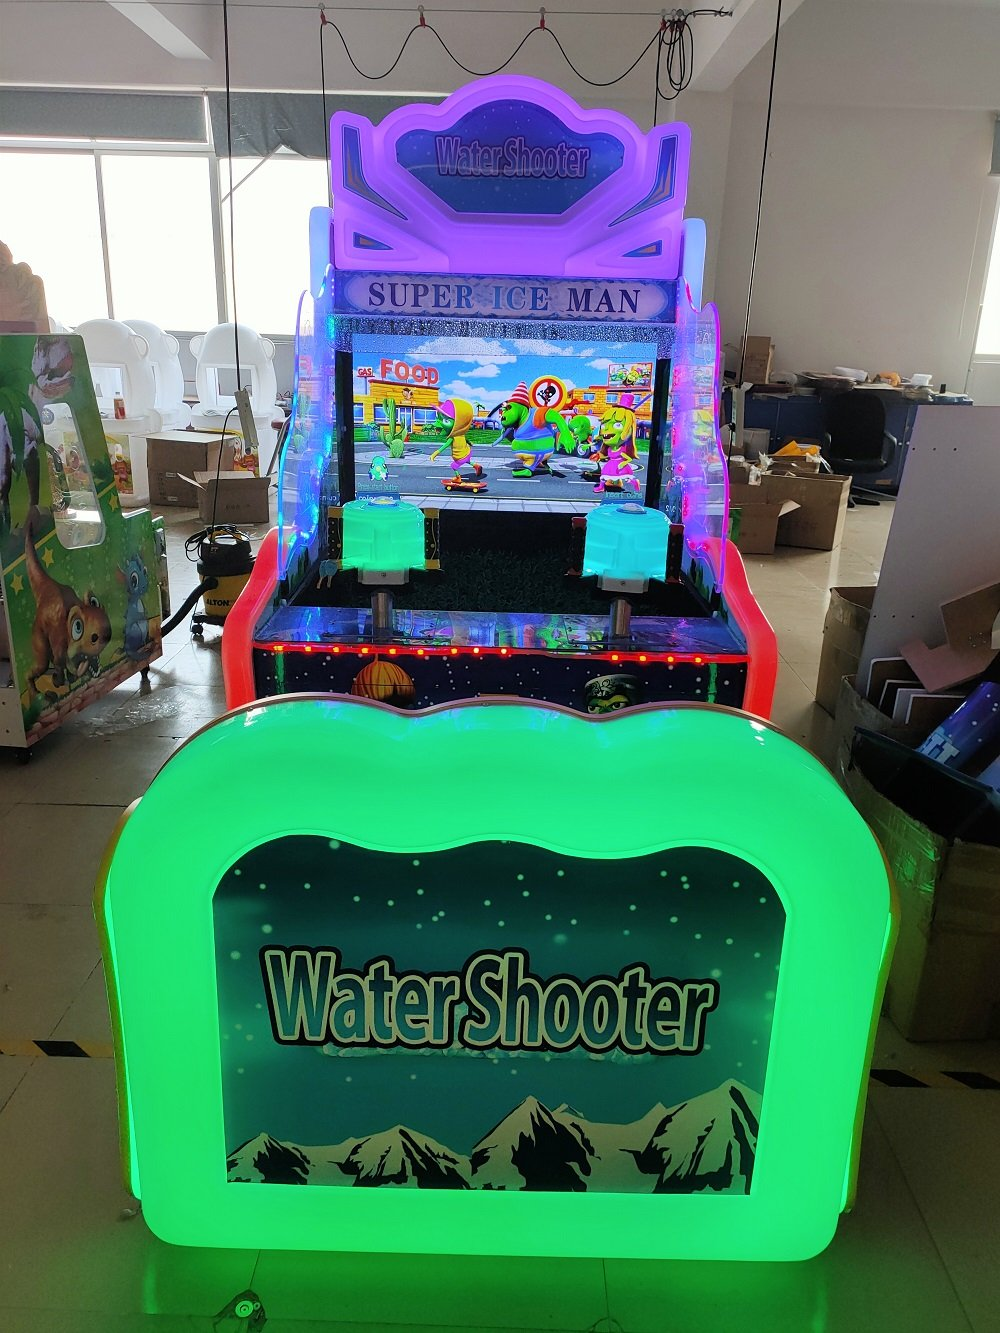 20 In 1 Water Shooting Video Game Machine